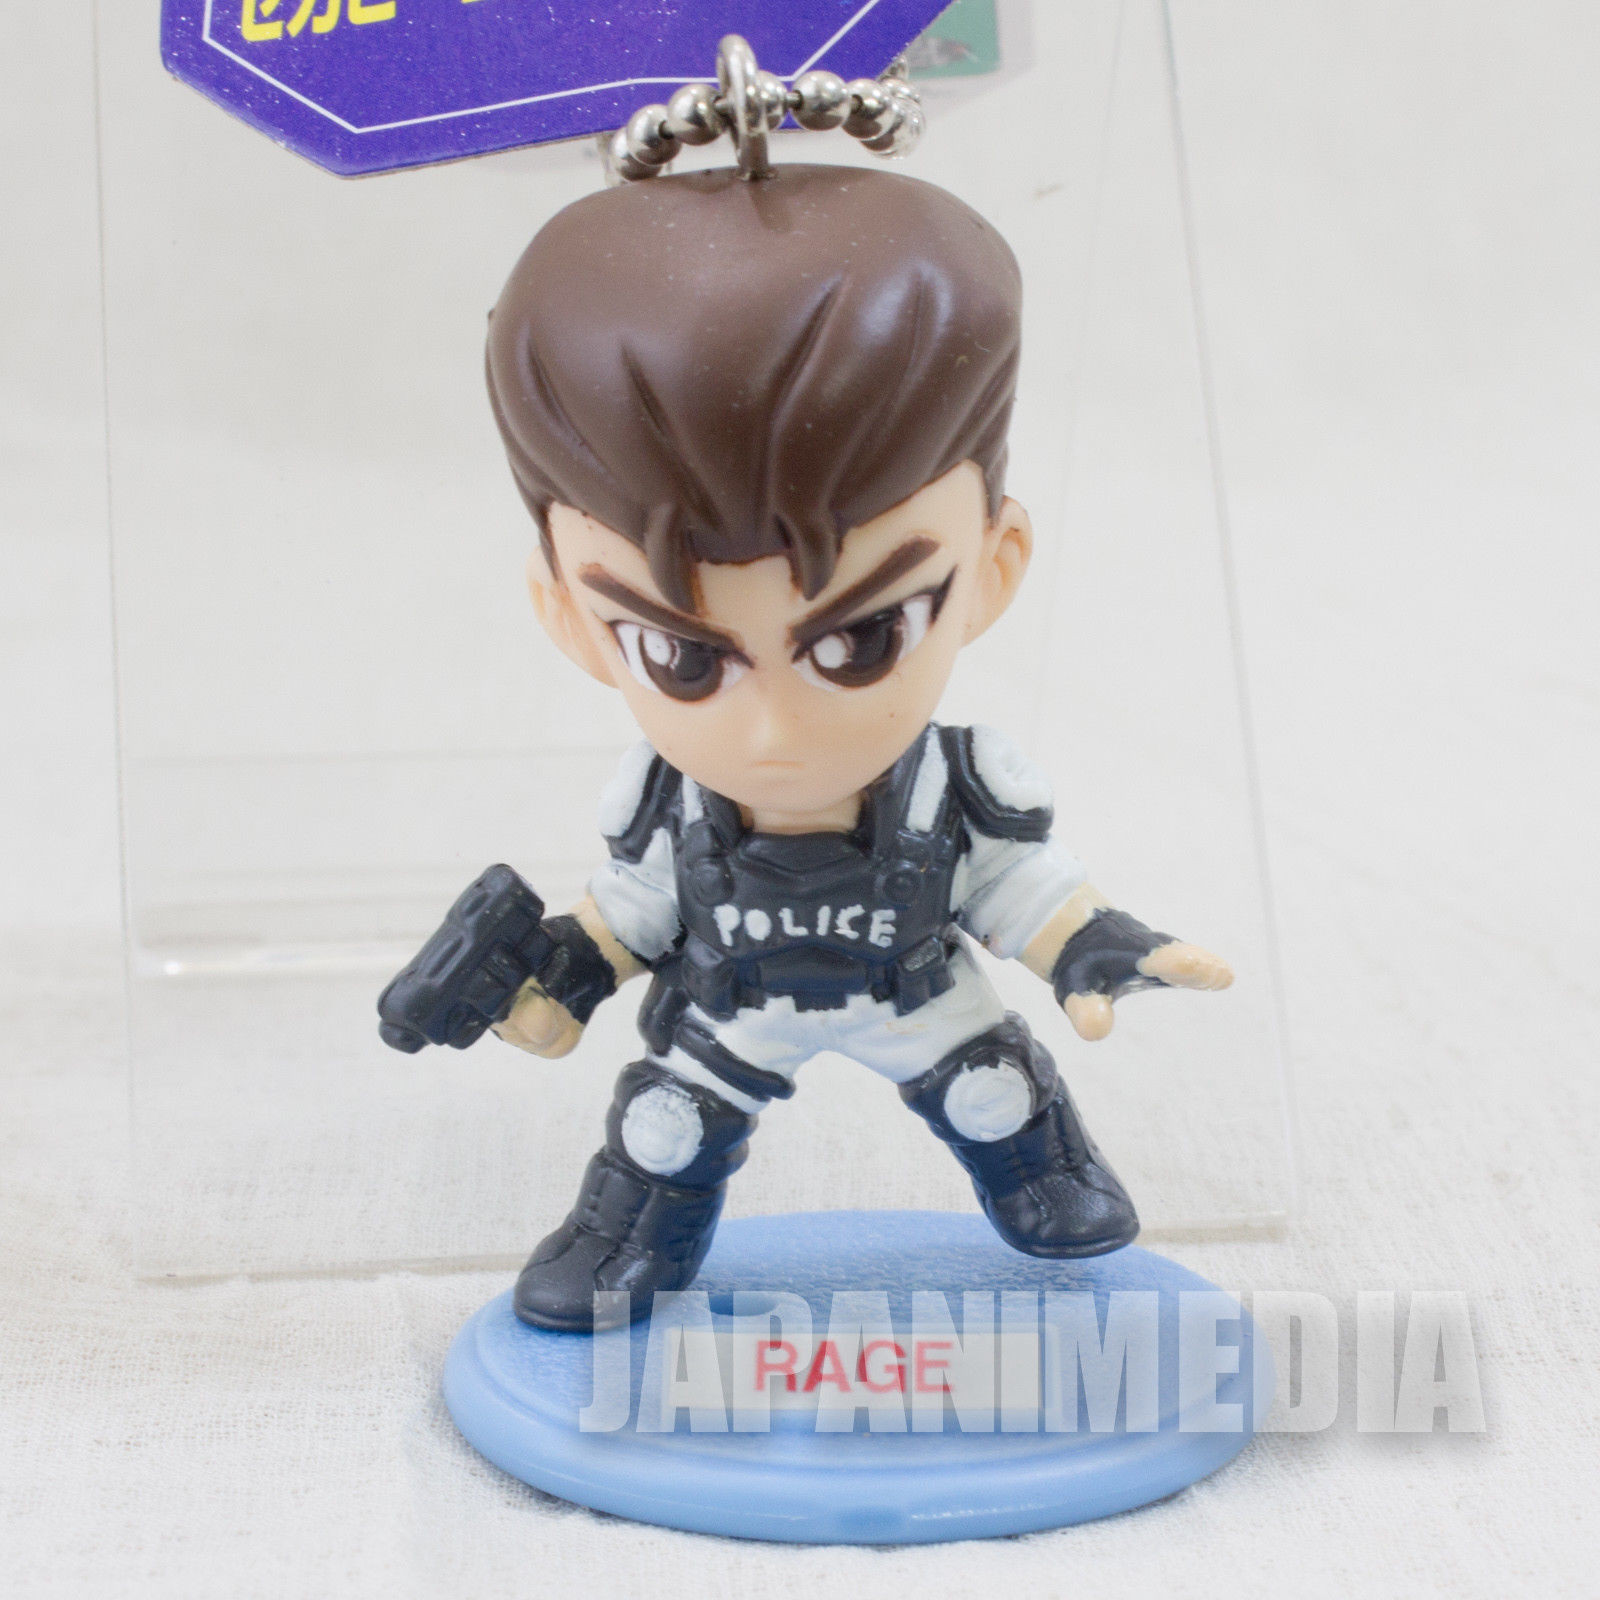 RARE! Virtua Cop Rage Figure Ballchain SEGA JAPAN GAME